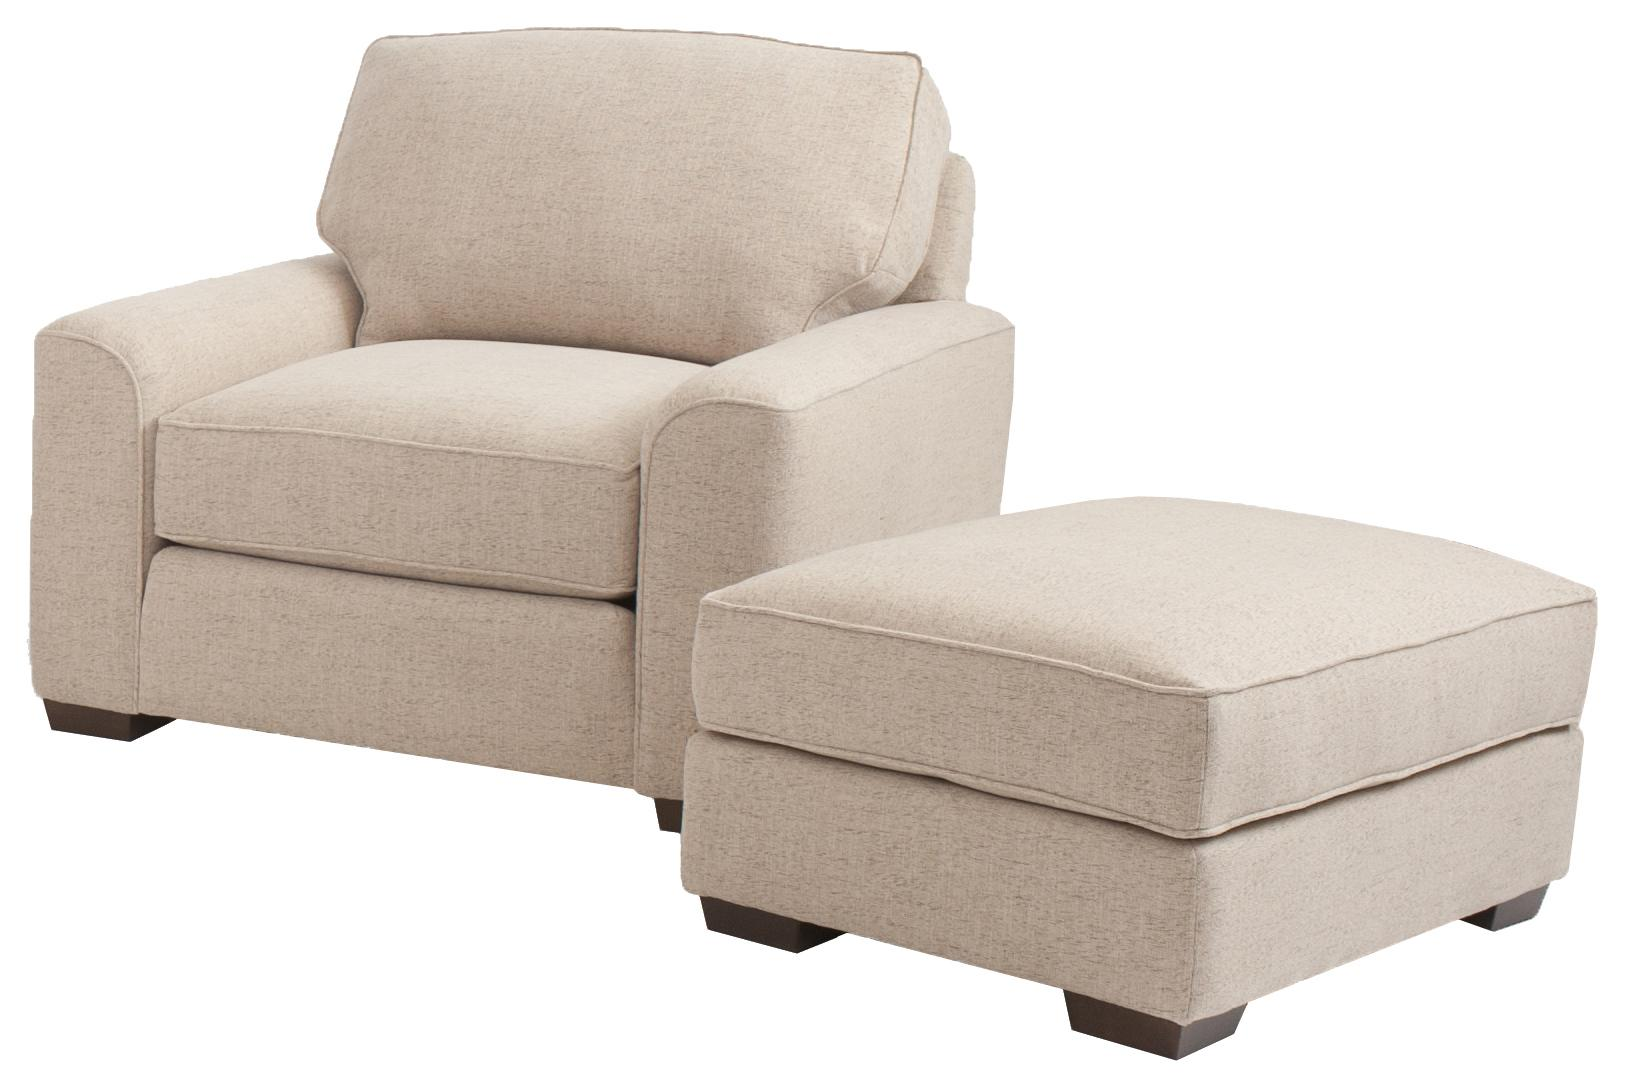 Retro styled chair and ottoman set by smith brothers for Settee and chair set